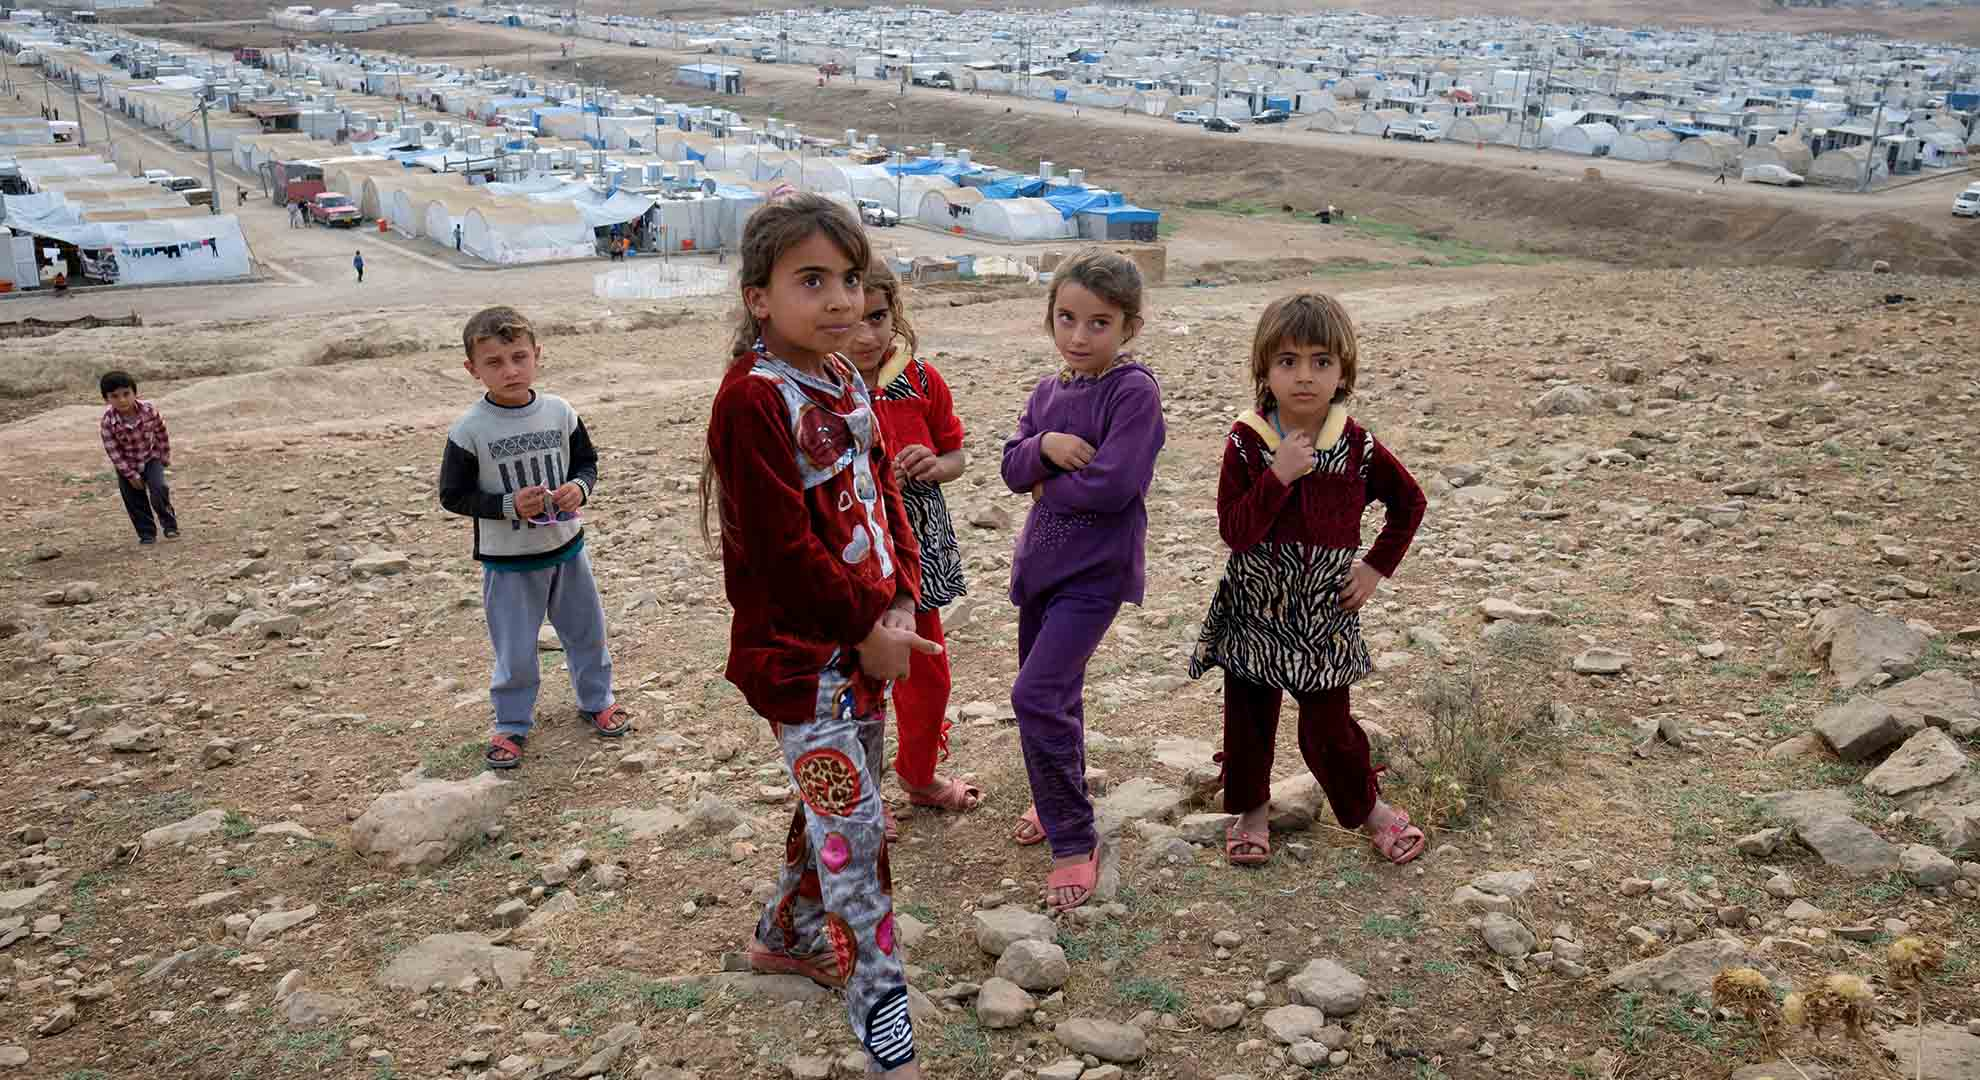 Living conditions in refugee camps: refugee children in the Northern Iraq_Kurdih Border